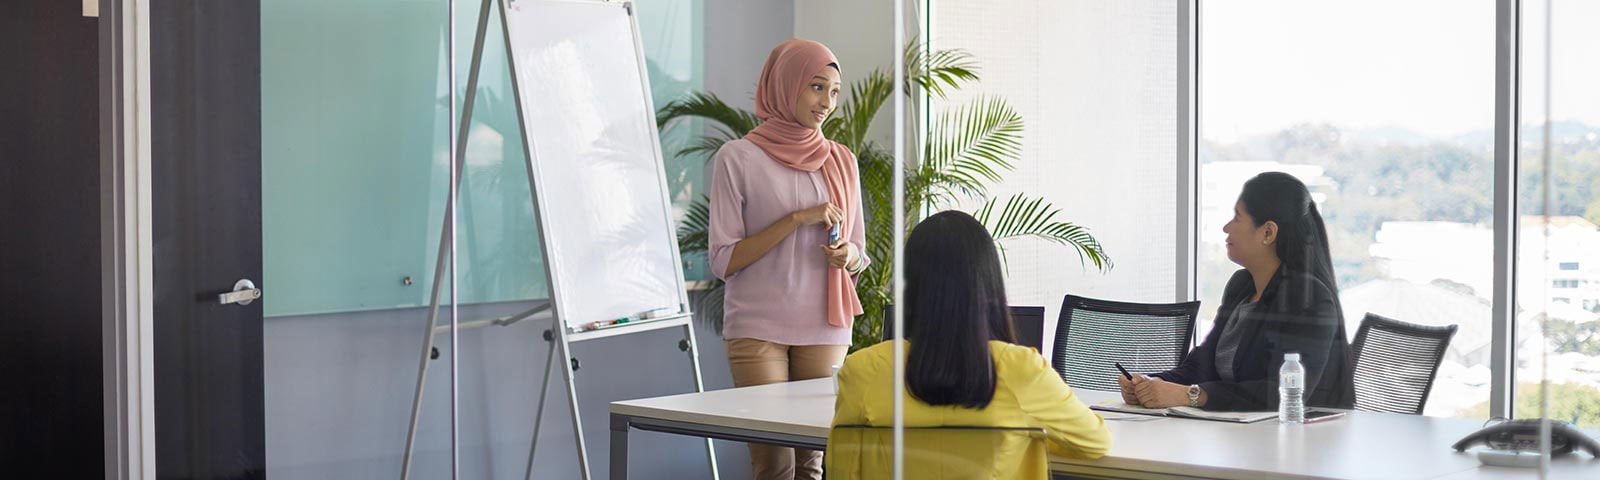 three women discussing in meeting room